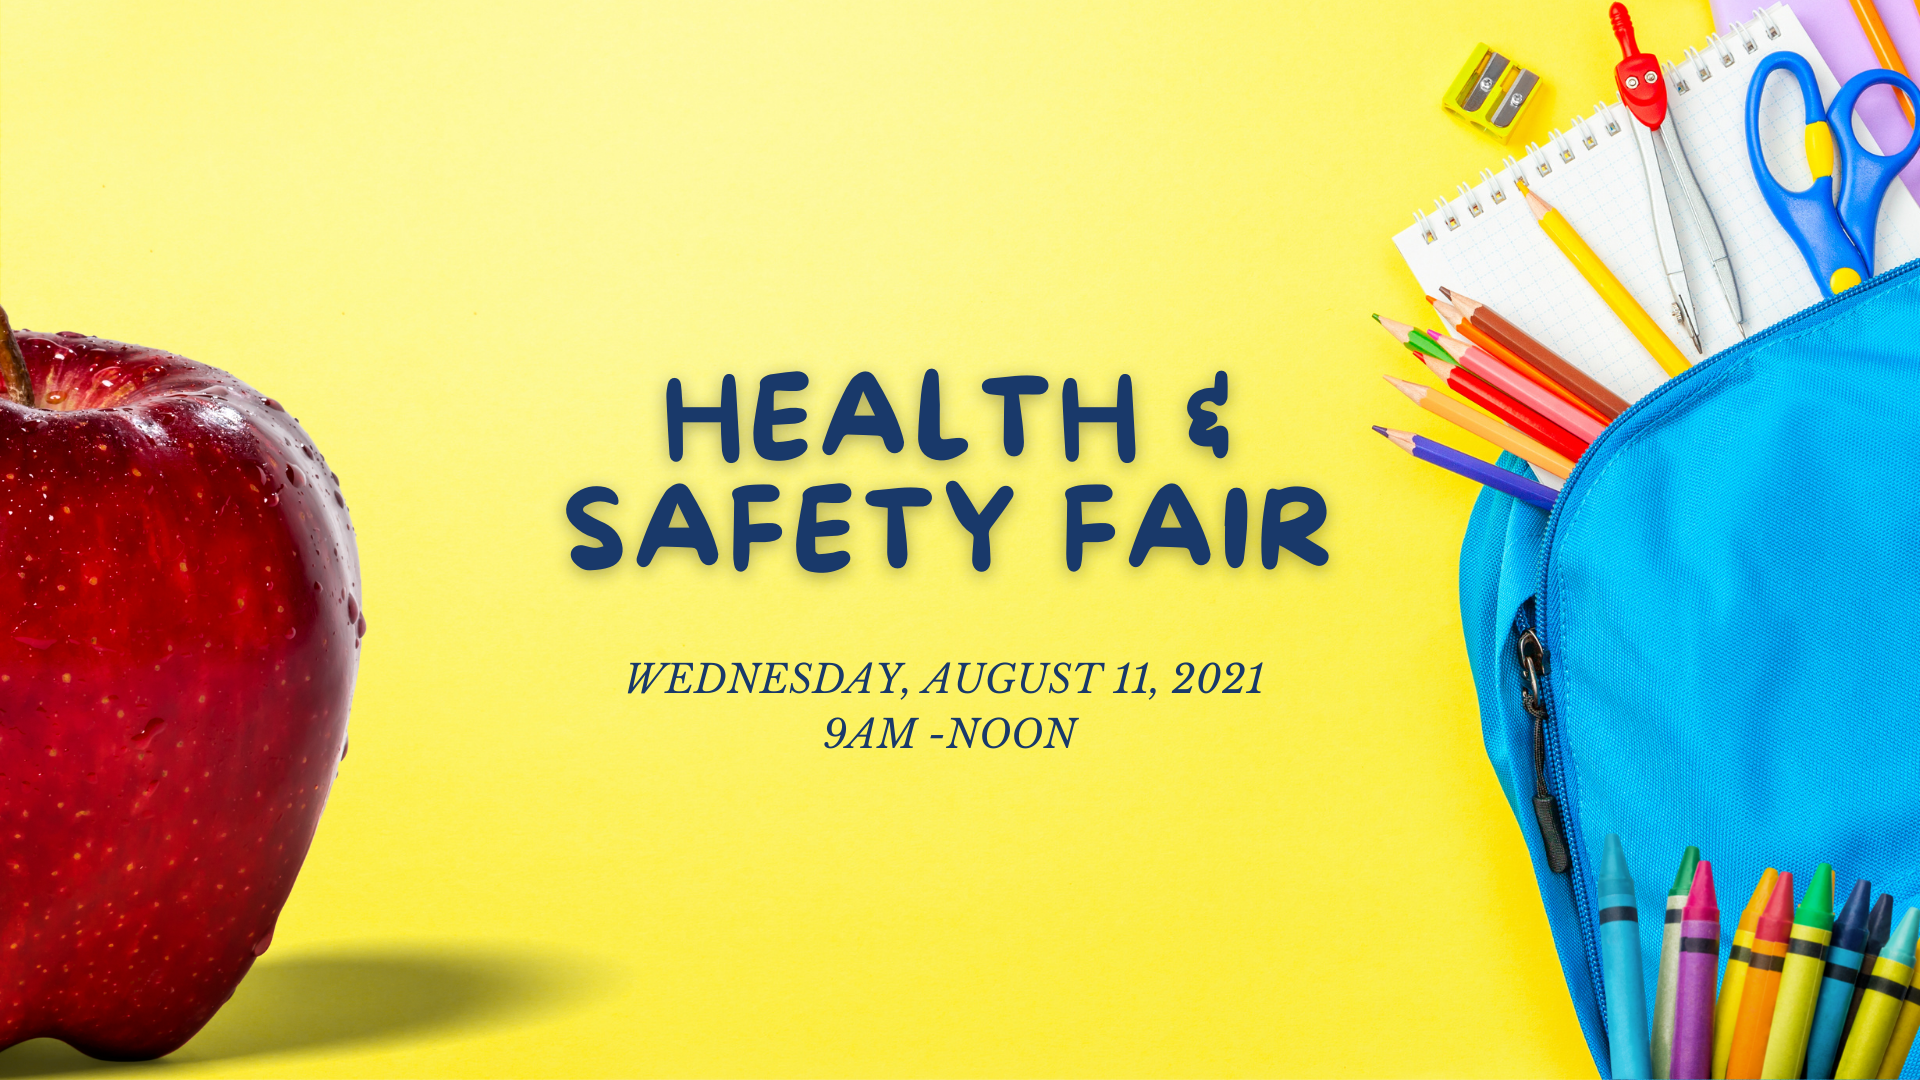 Health and Safety Fair Wednesday, August 11, 2021 9am - Noon